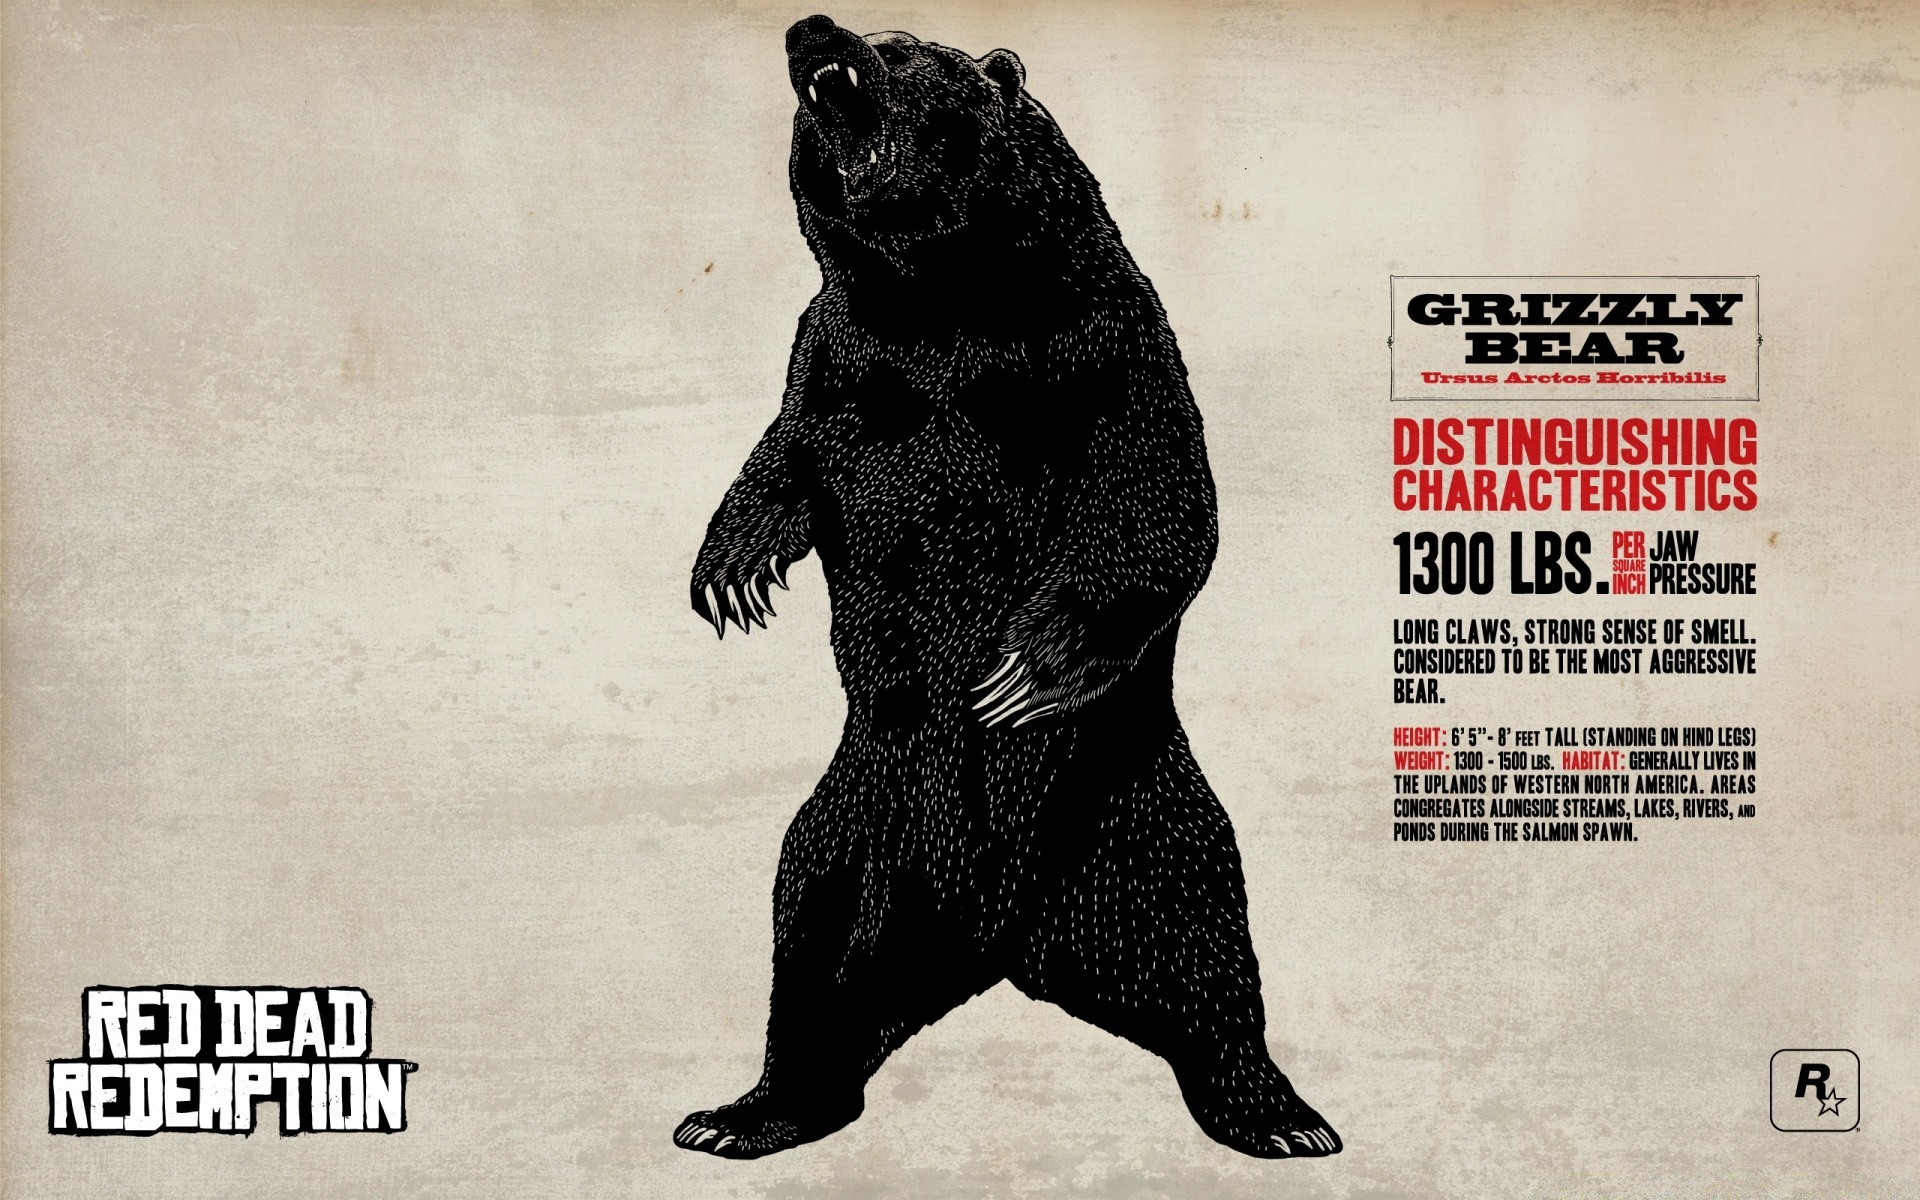 Red Dead Redemption Grizzly Bear Iphone Wallpapers For Free